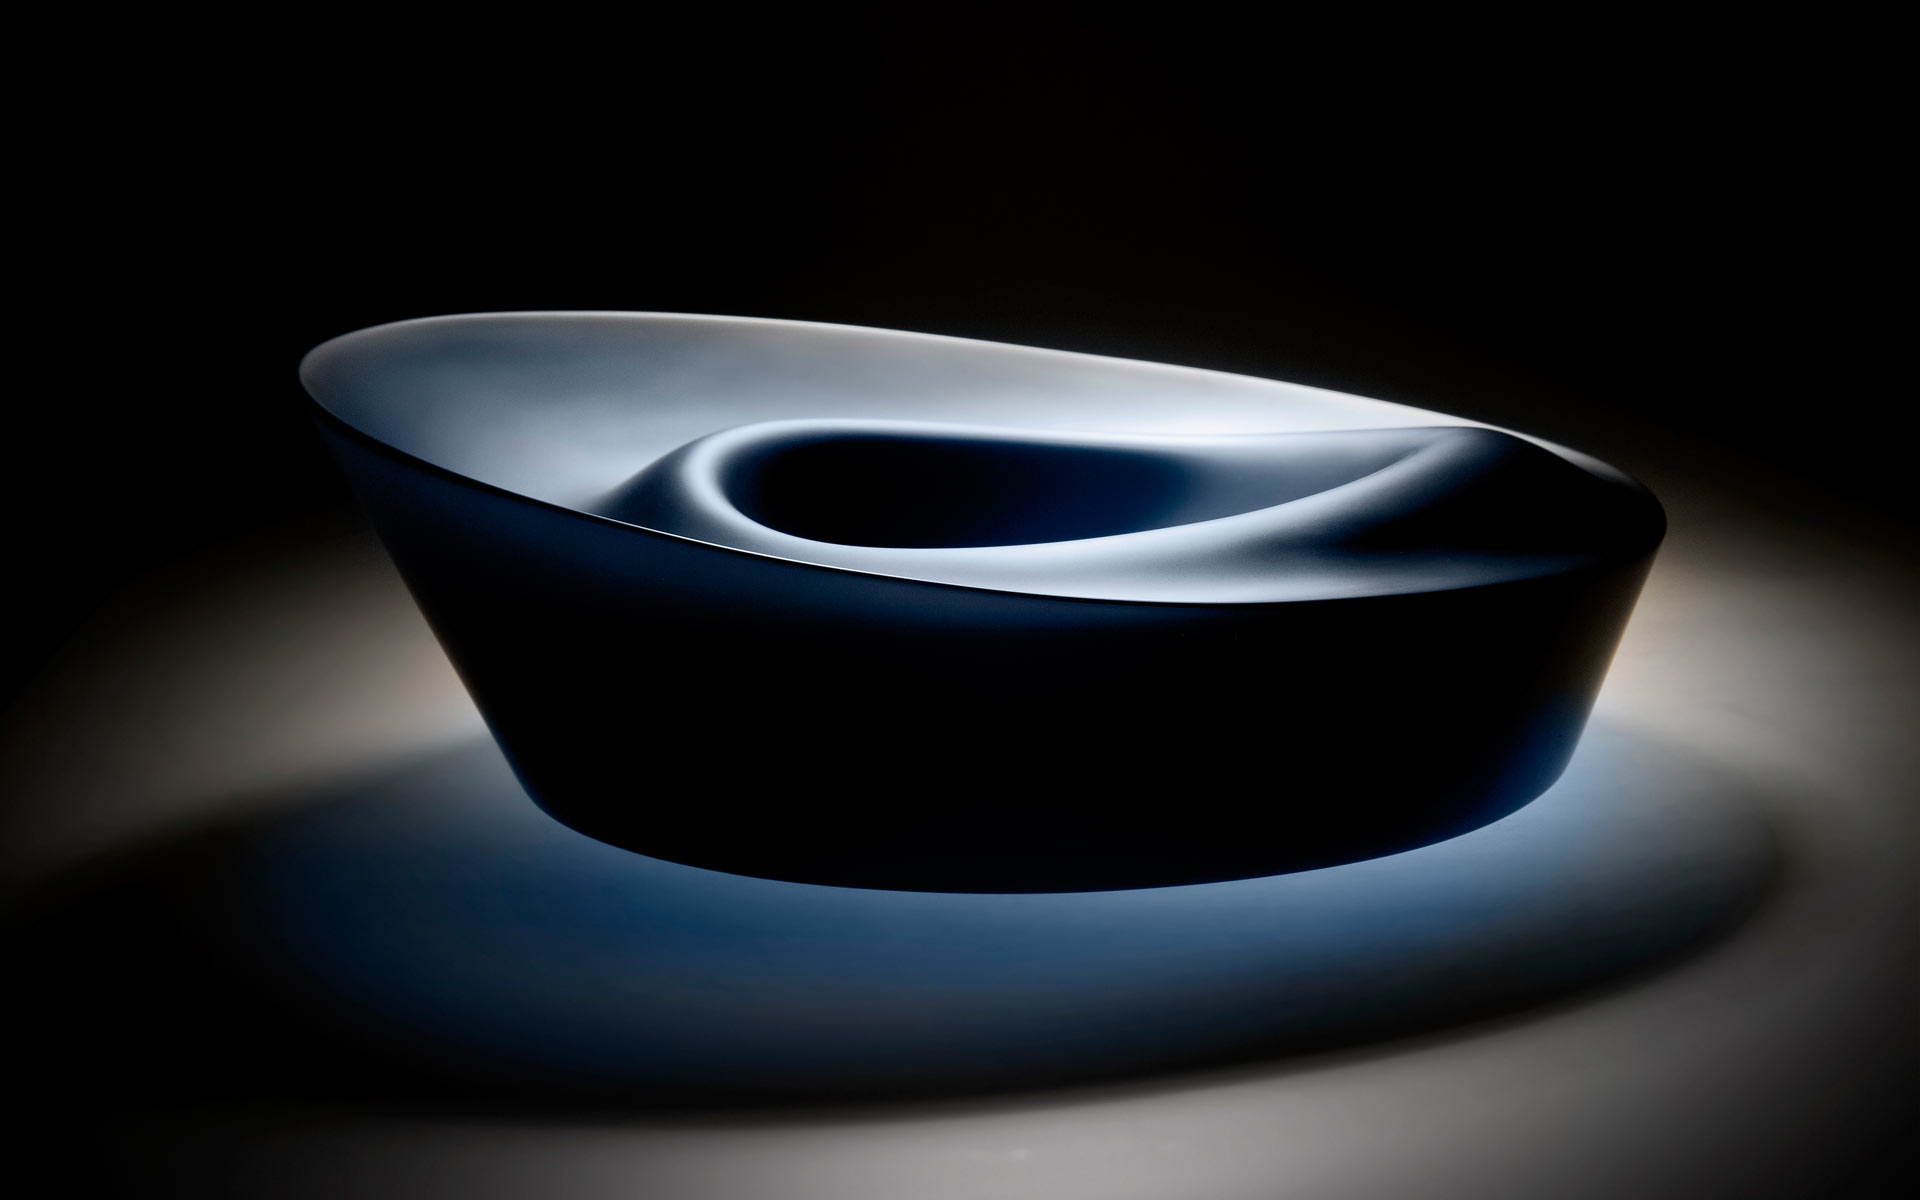 Ripple Series - Blue Bowl Form